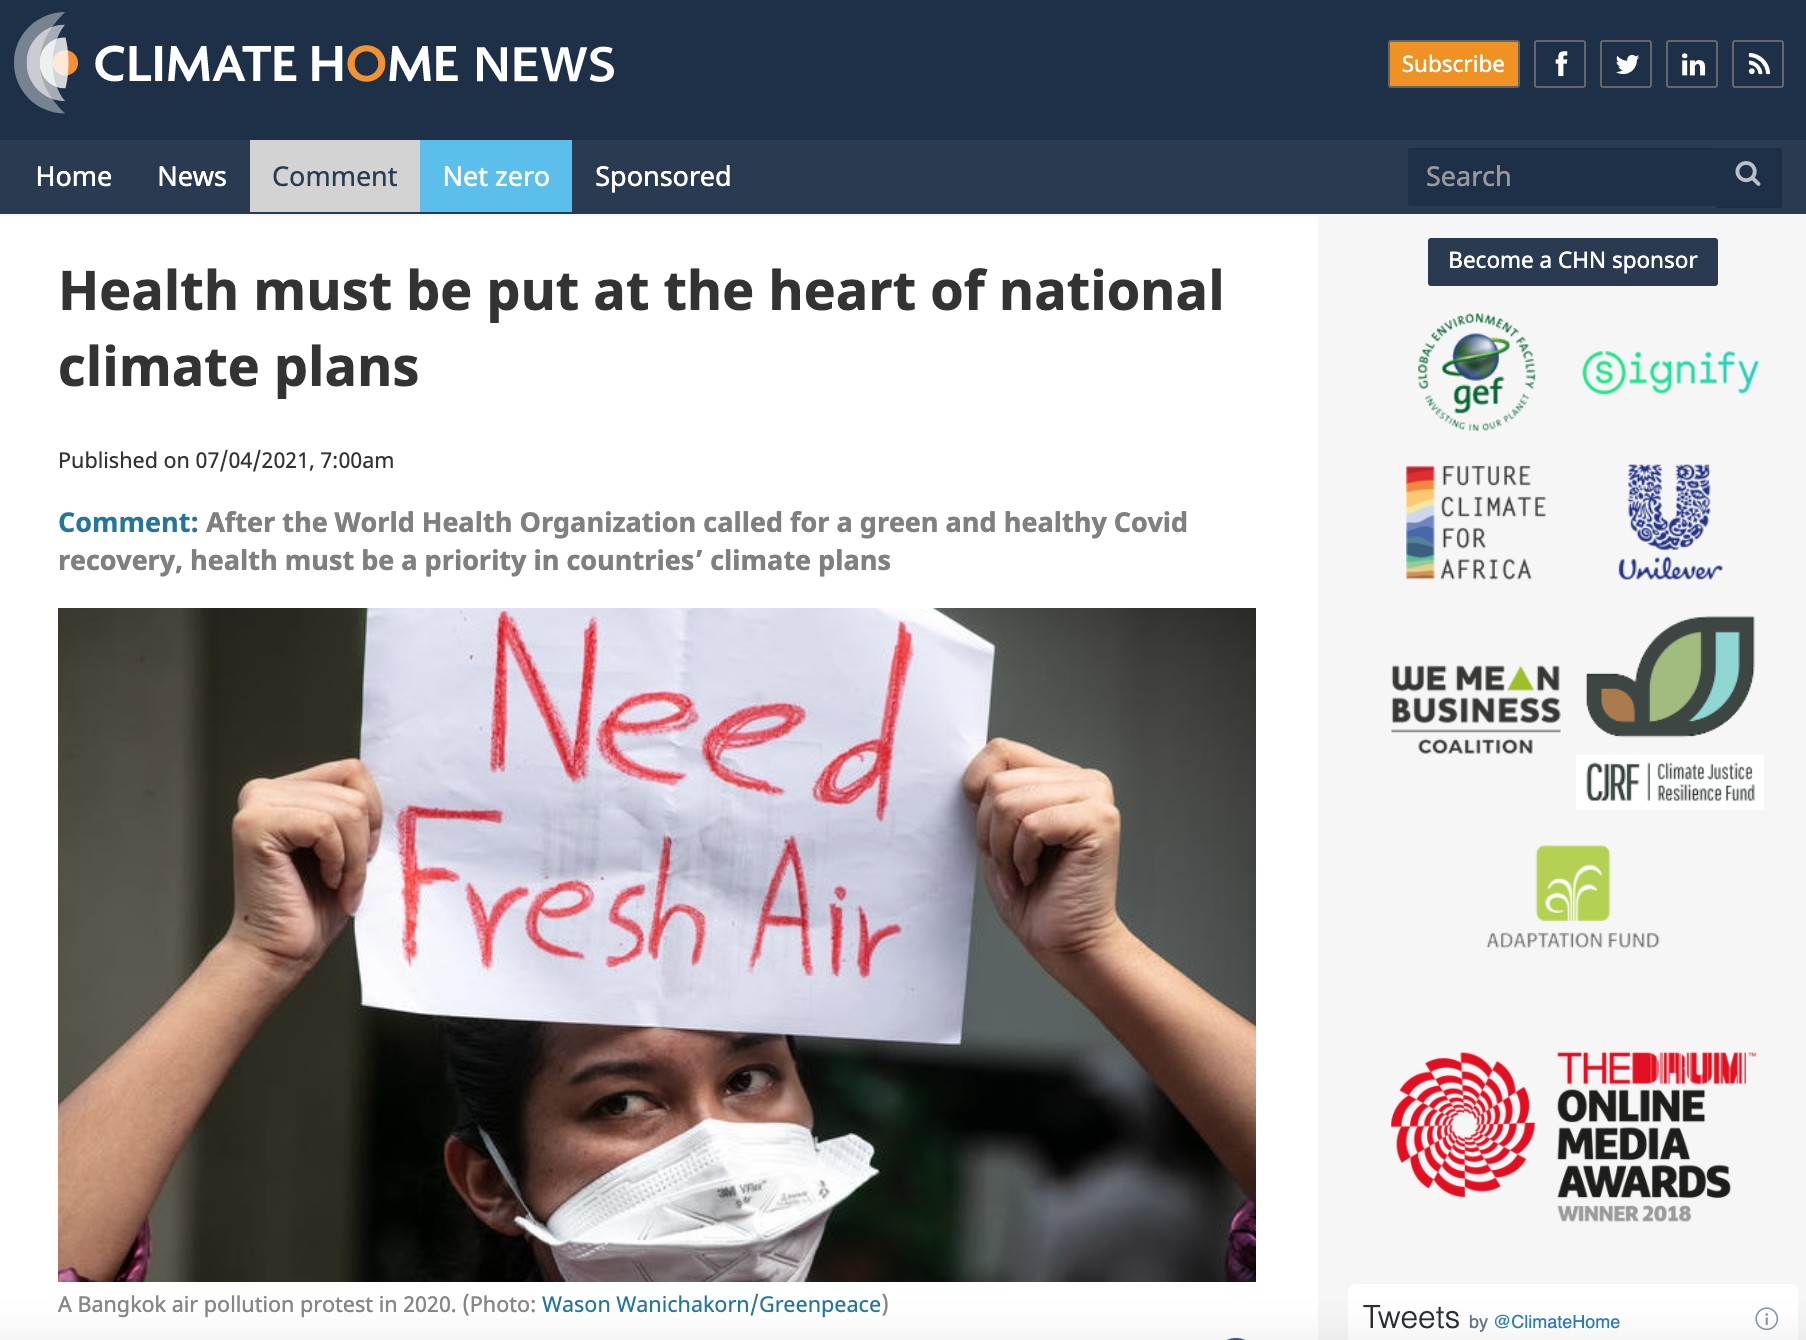 Health must be put at the heart of national climate plans